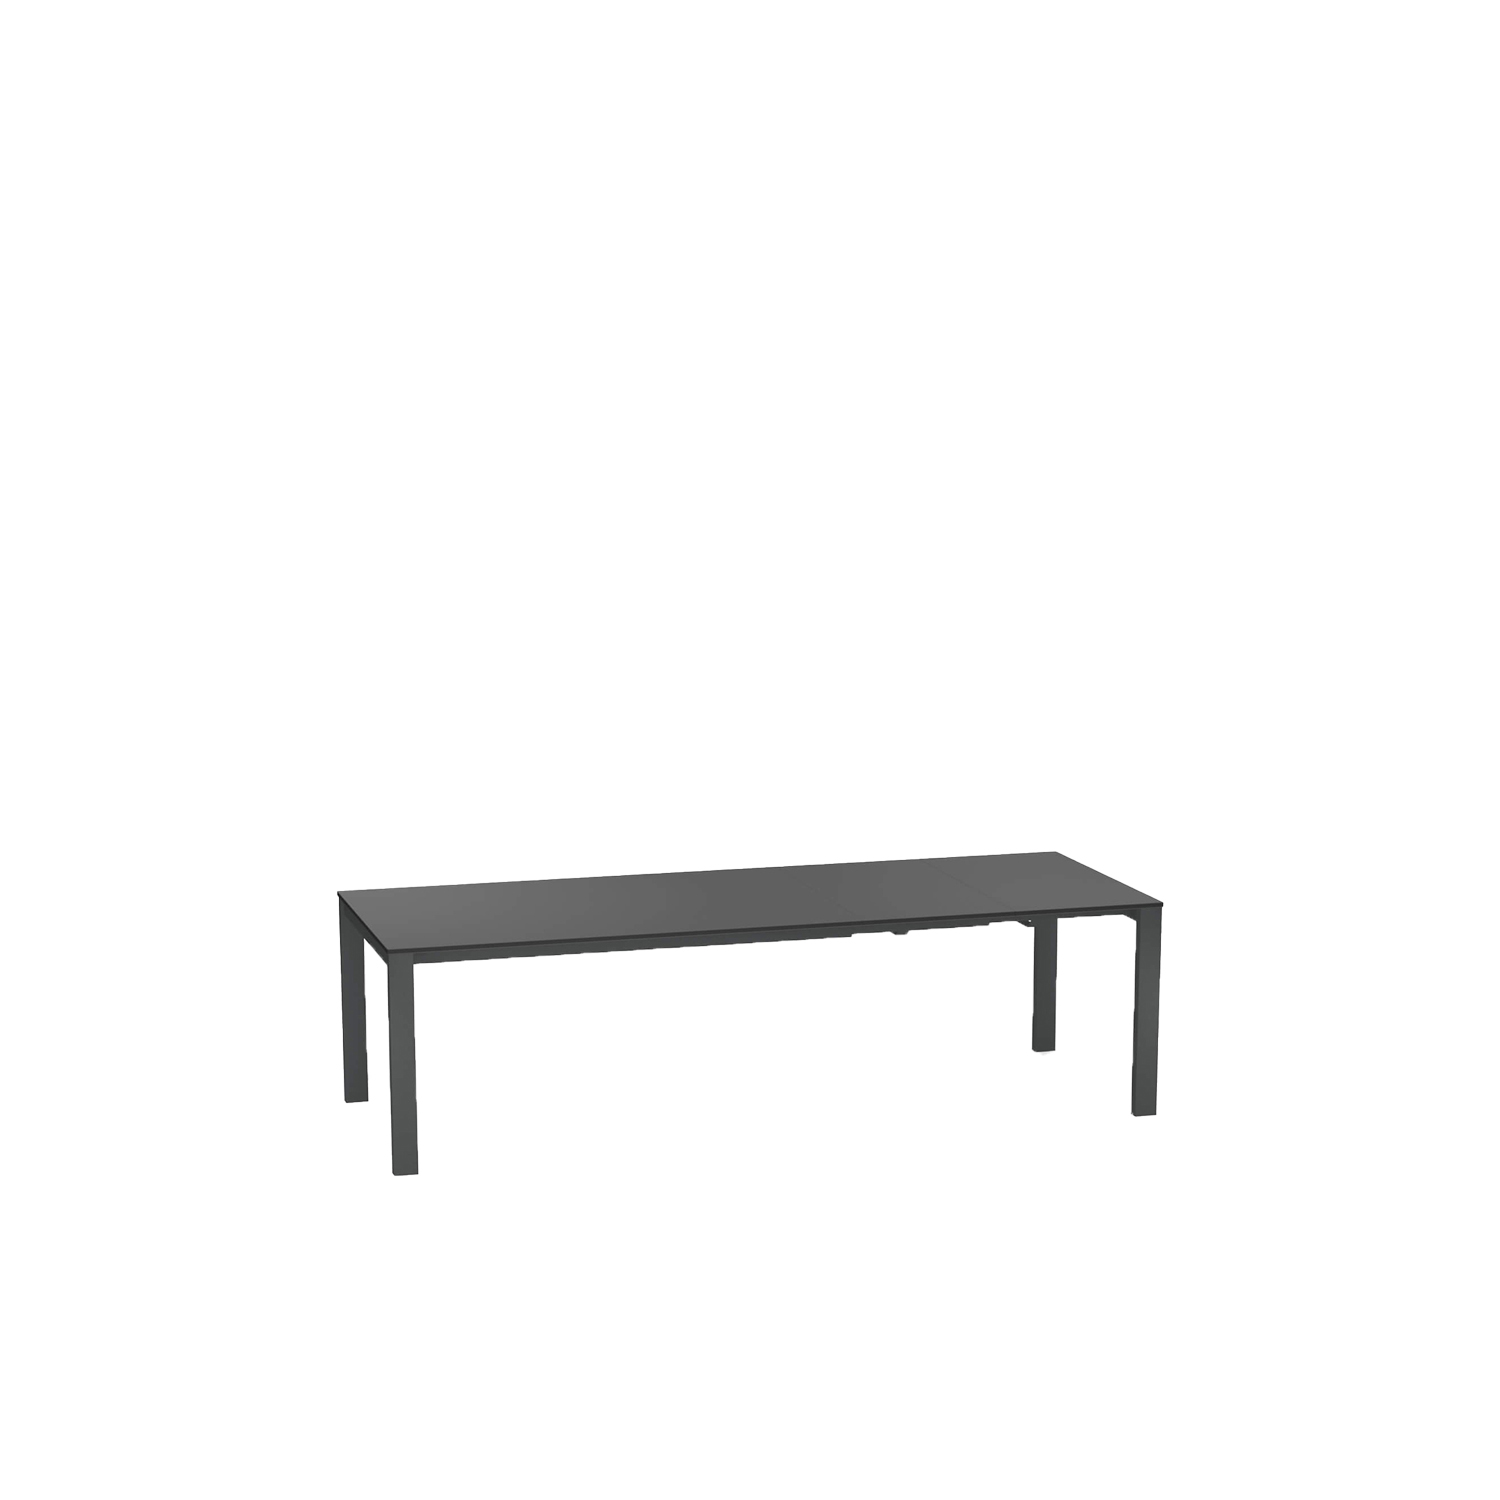 Round Extensible Table With Steel Sheet Top - The Round Extensible Table With Steel Sheet Top can be extended to suit your space or needs. The length it comes in is 160 cm but this can be extended +54 cm and then +54 cm again of needed. It comes in Matt White and Antique Iron. Please refer to the Colours and Finishes attachment to see these colours.   Round is a collection defined by its search for structural balance and soft lines, an interpretation of outdoor space that conveys stylistic but essential refinement. Clean and basic shapes mark the range of elements that make up this collection.</p>  | Matter of Stuff